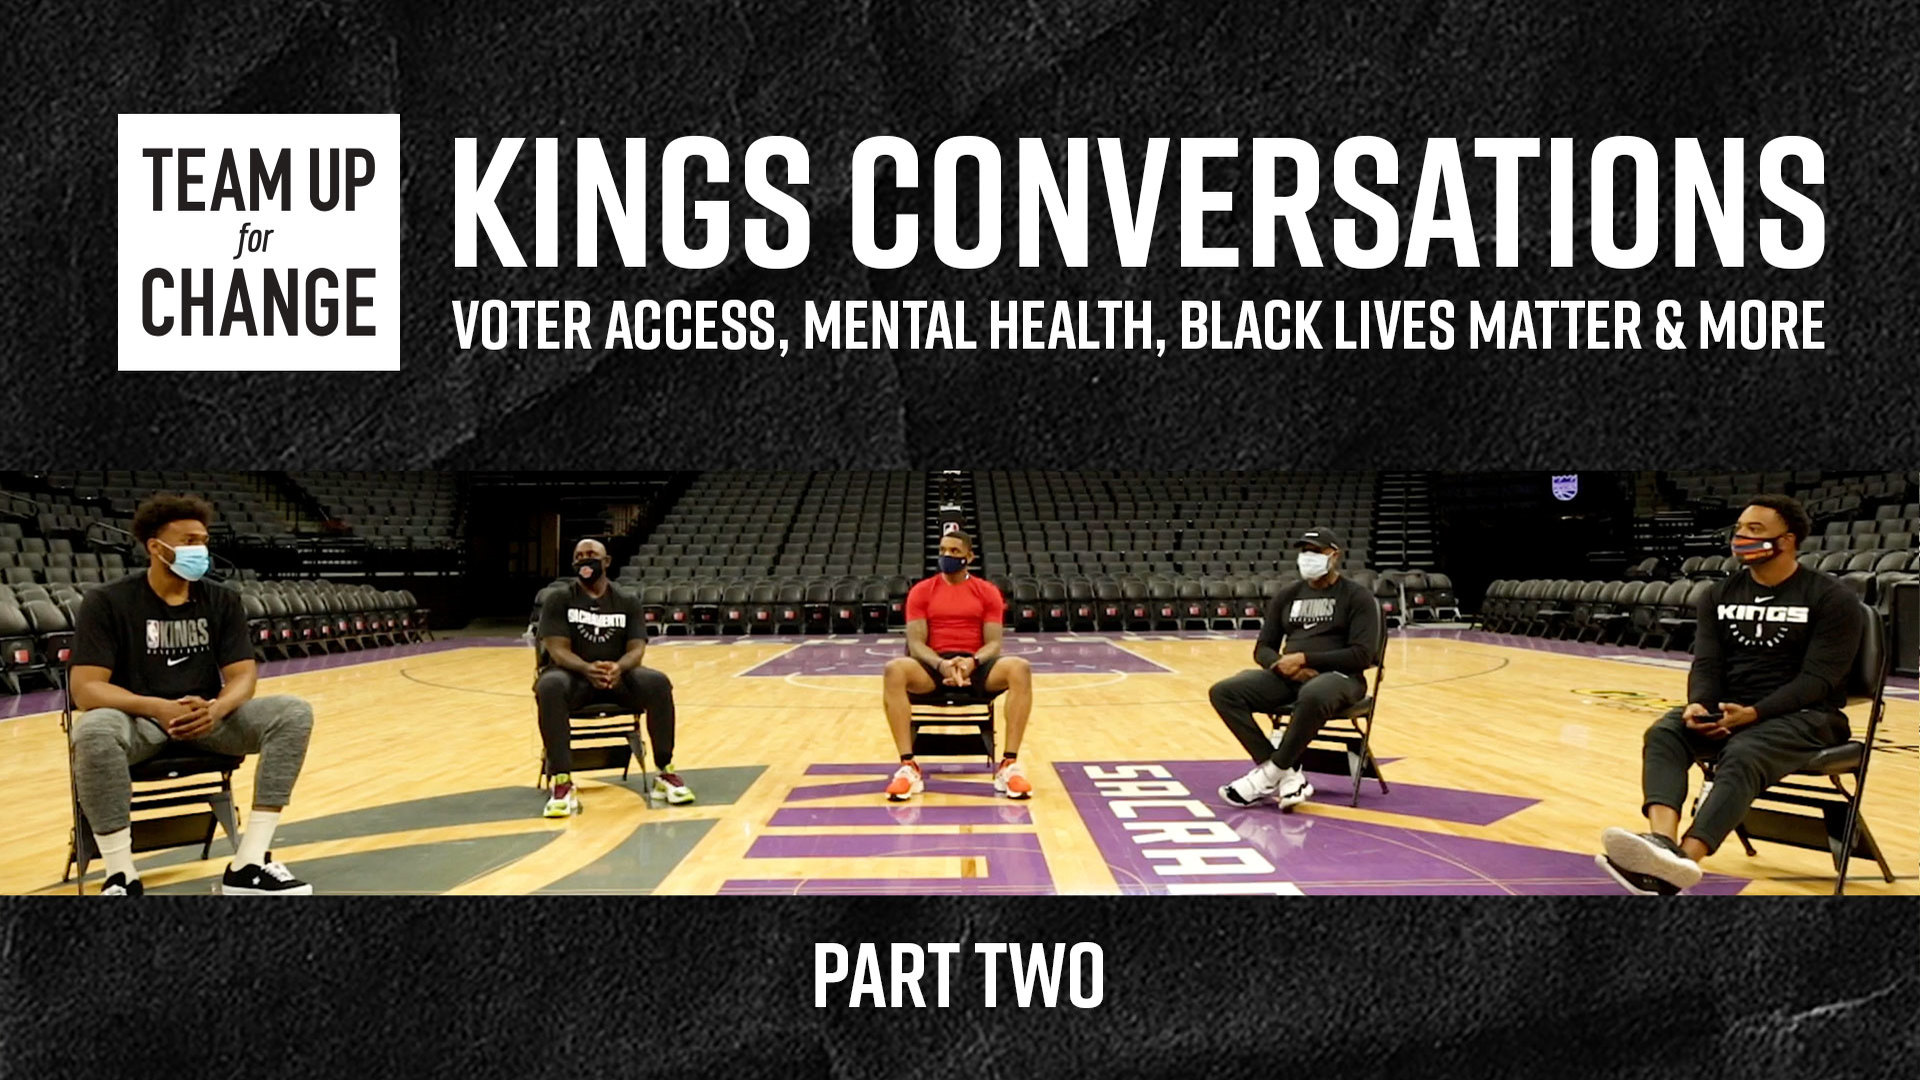 Team Up For Change | Kings Conversations Part 2